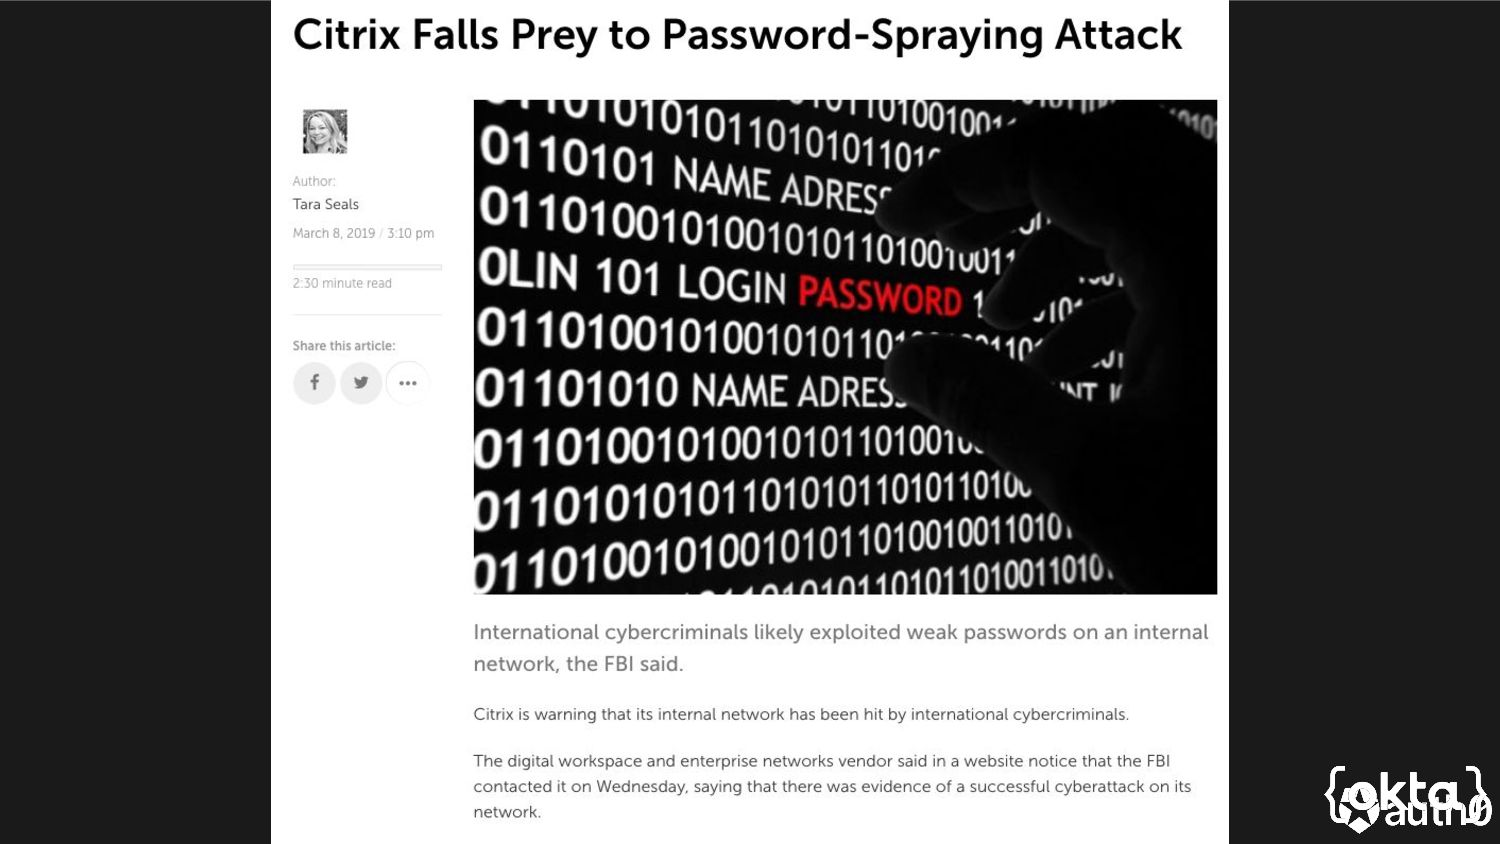 Come on, tell me who are you?